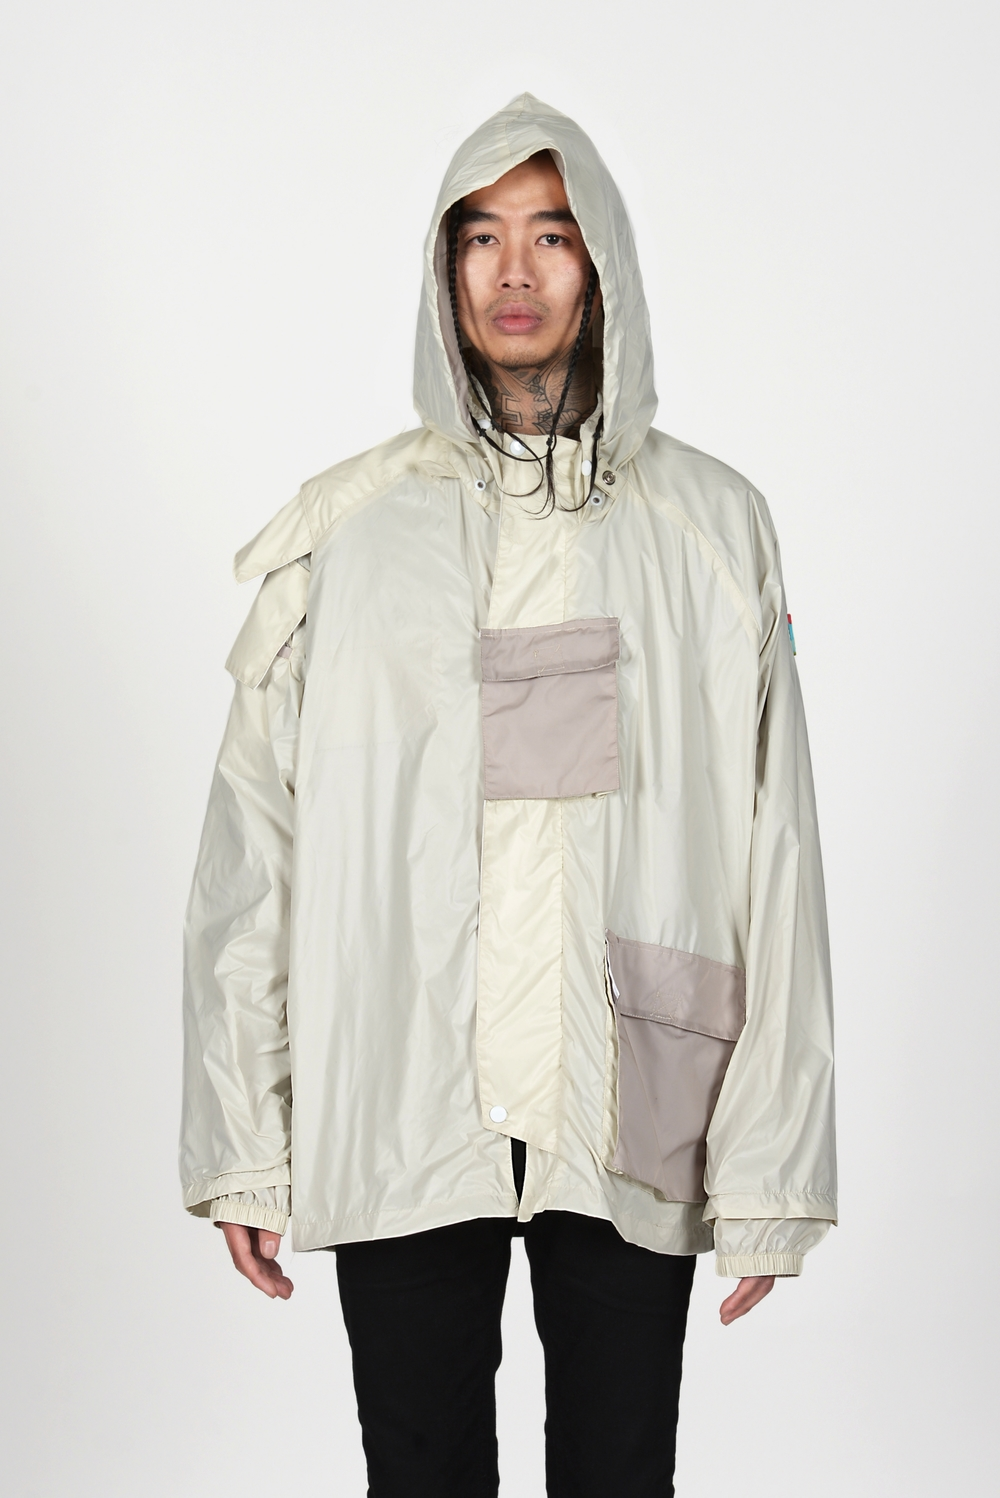 07 Heightened Sense white rain coat.jpg